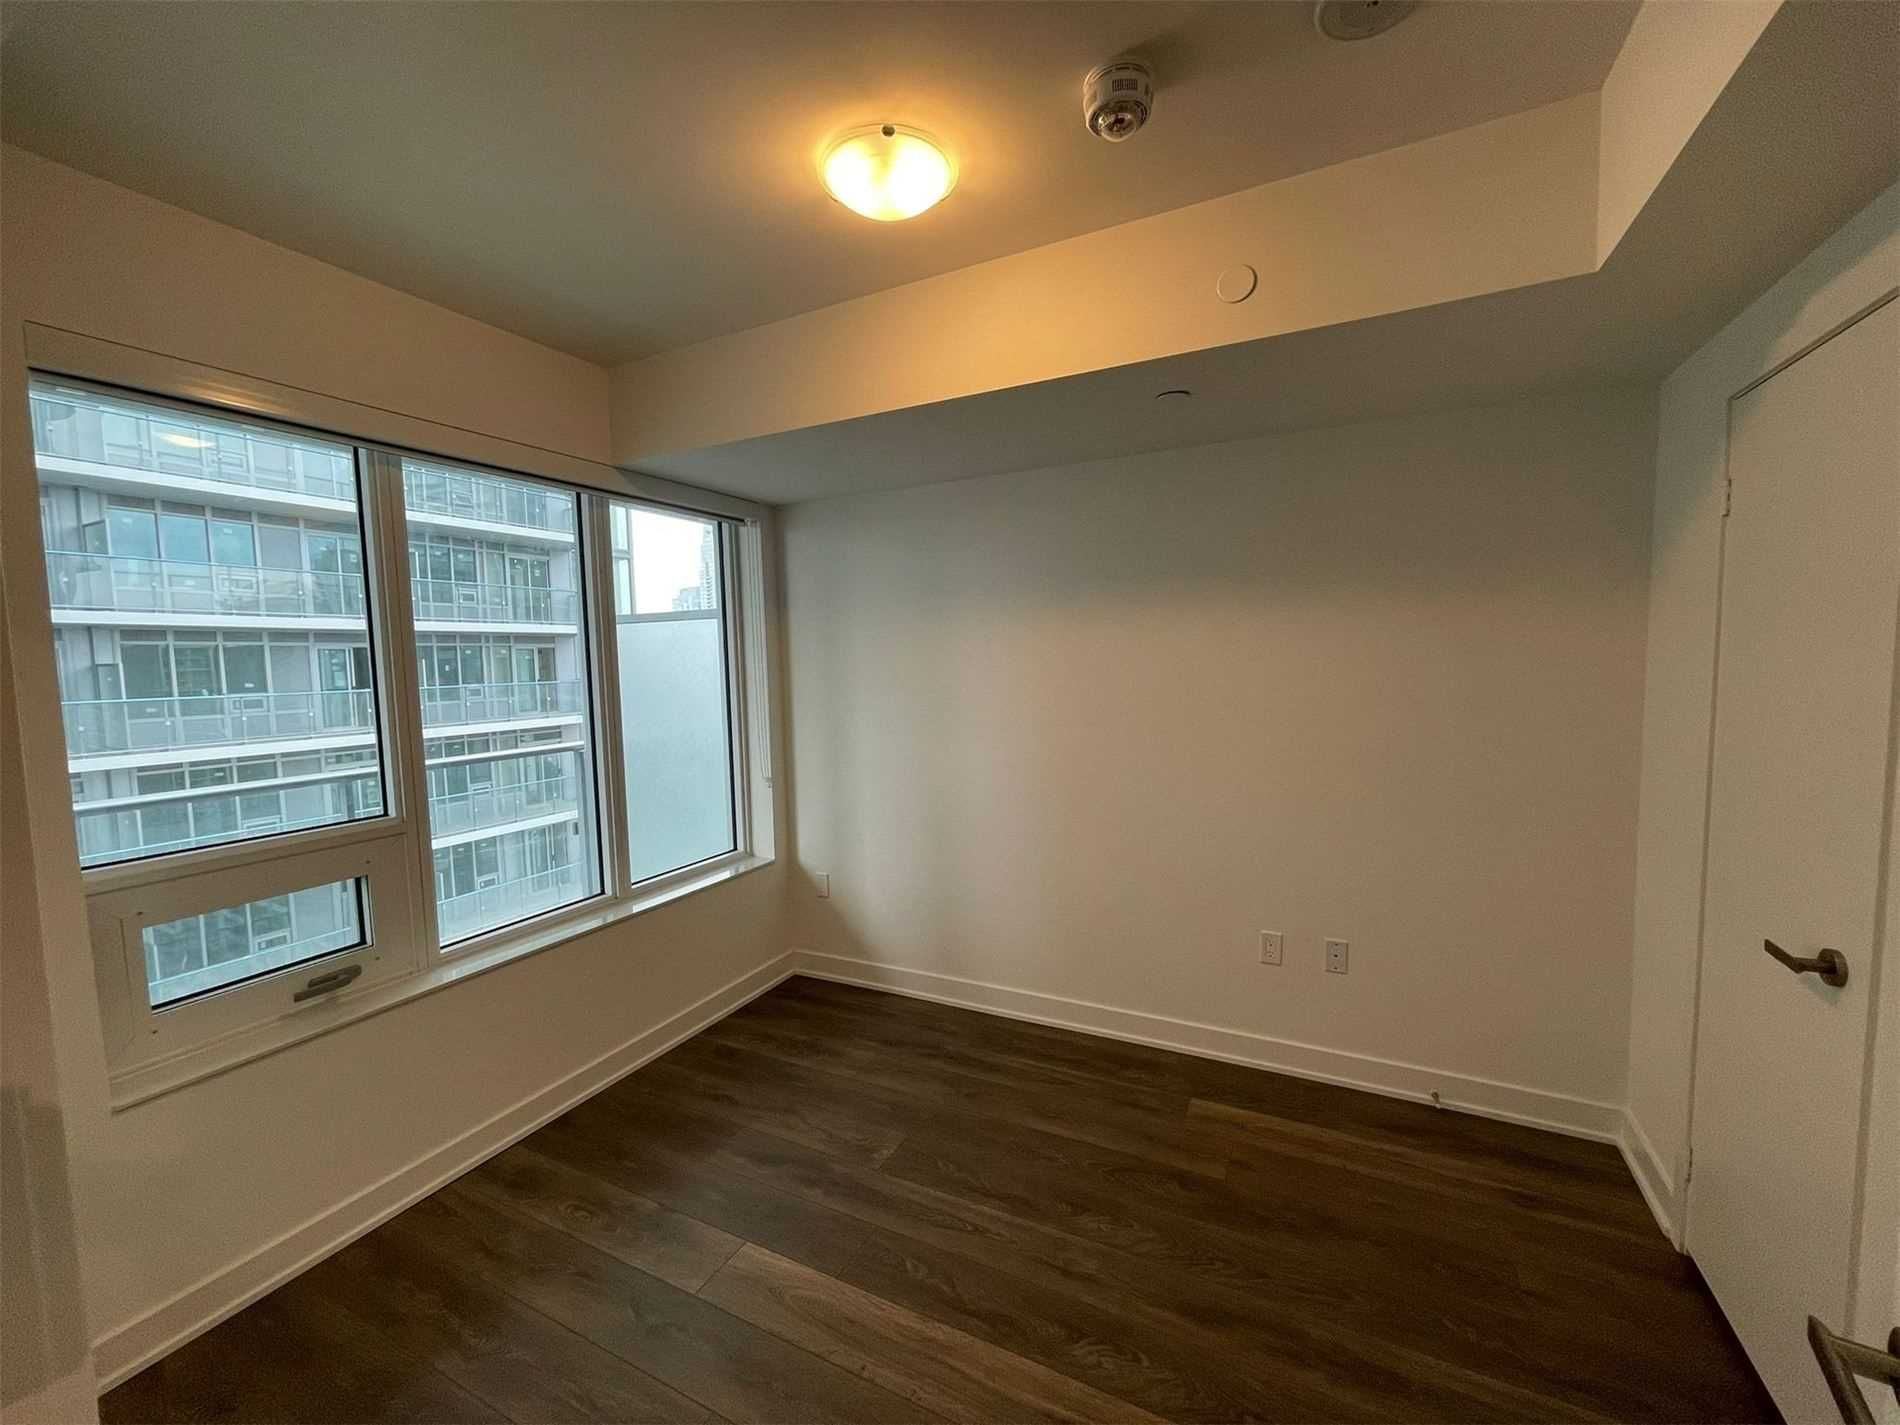 99 Broadway Ave, unit 1908 Nt for rent in Toronto - image #2